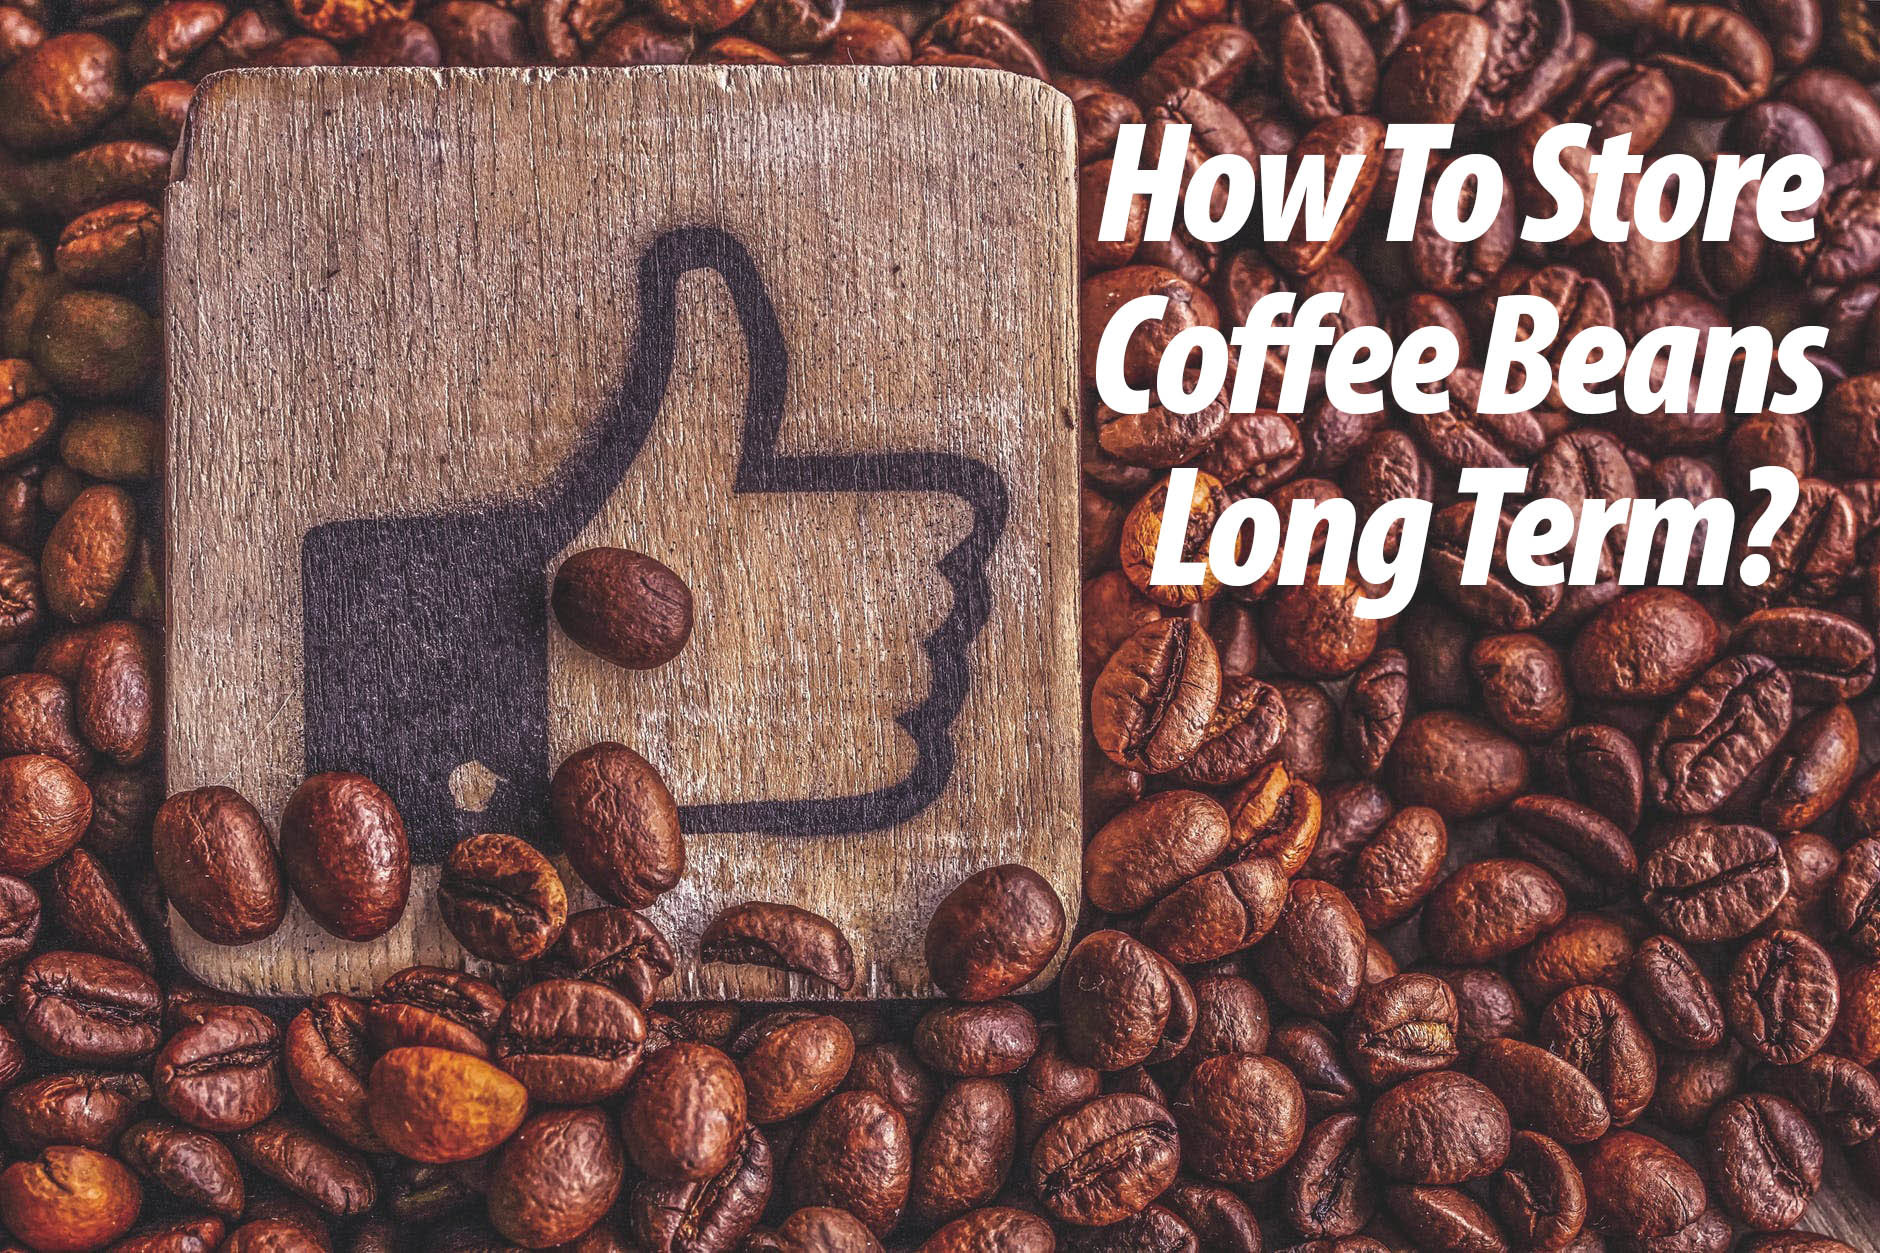 How To Store Coffee Beans Long Term?